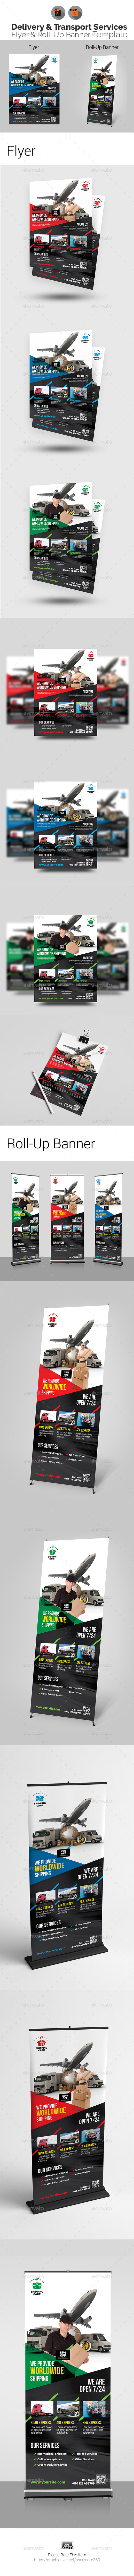 Delivery & Transport Service Flyer & Roll-Up Bundle - Print Templates